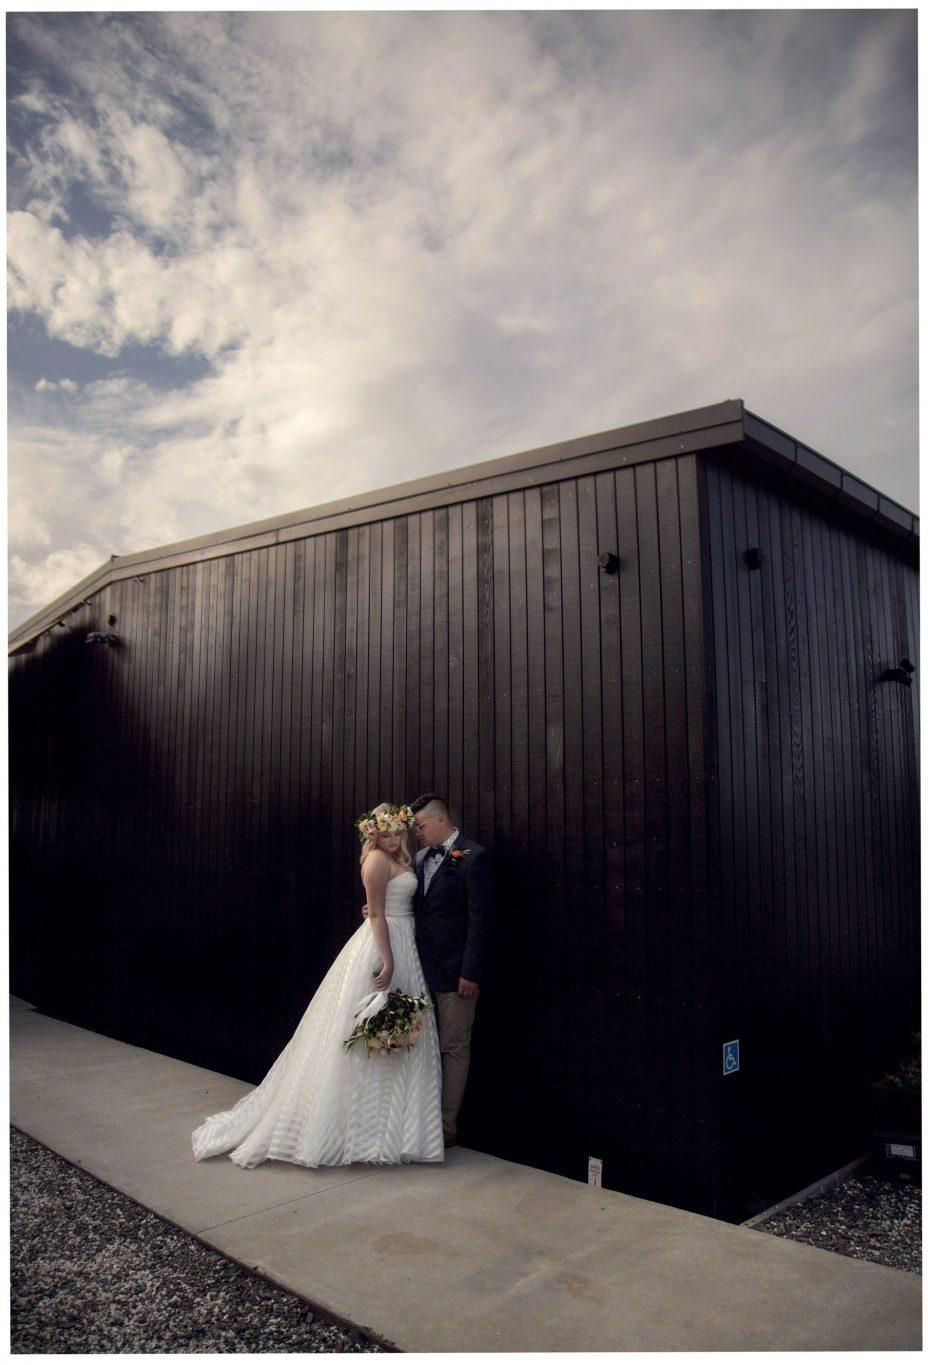 Bride and groom next to The Barn Wedding reception venue at The Hunting Lodge Waimauku